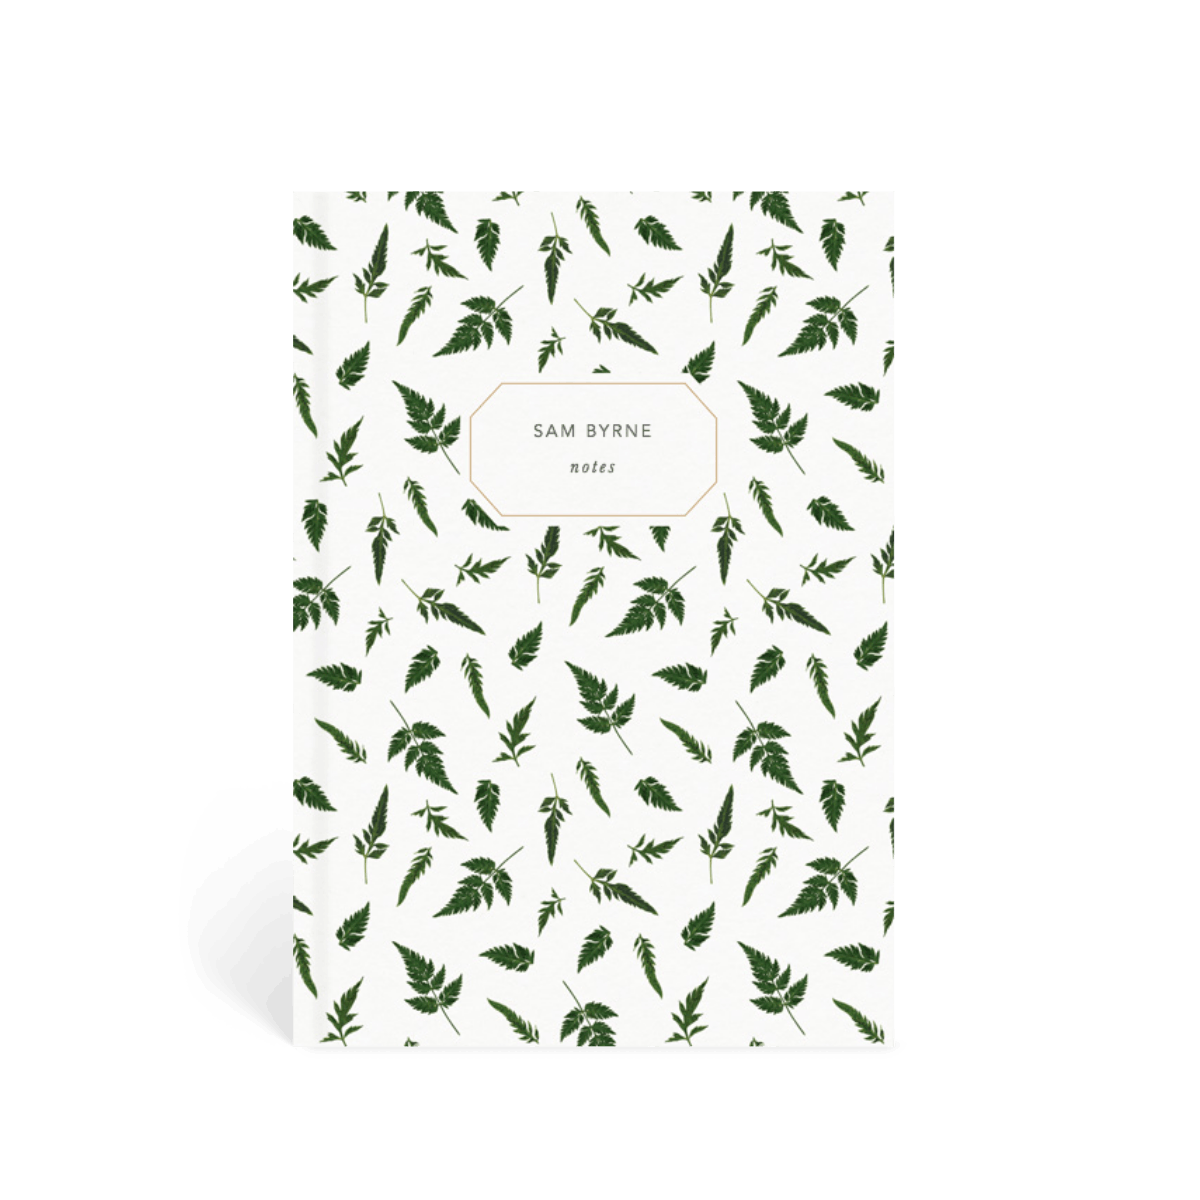 Https%3a%2f%2fwww.papier.com%2fproduct image%2f50896%2f25%2fcow parsley 12460 front 1540210796.png?ixlib=rb 1.1